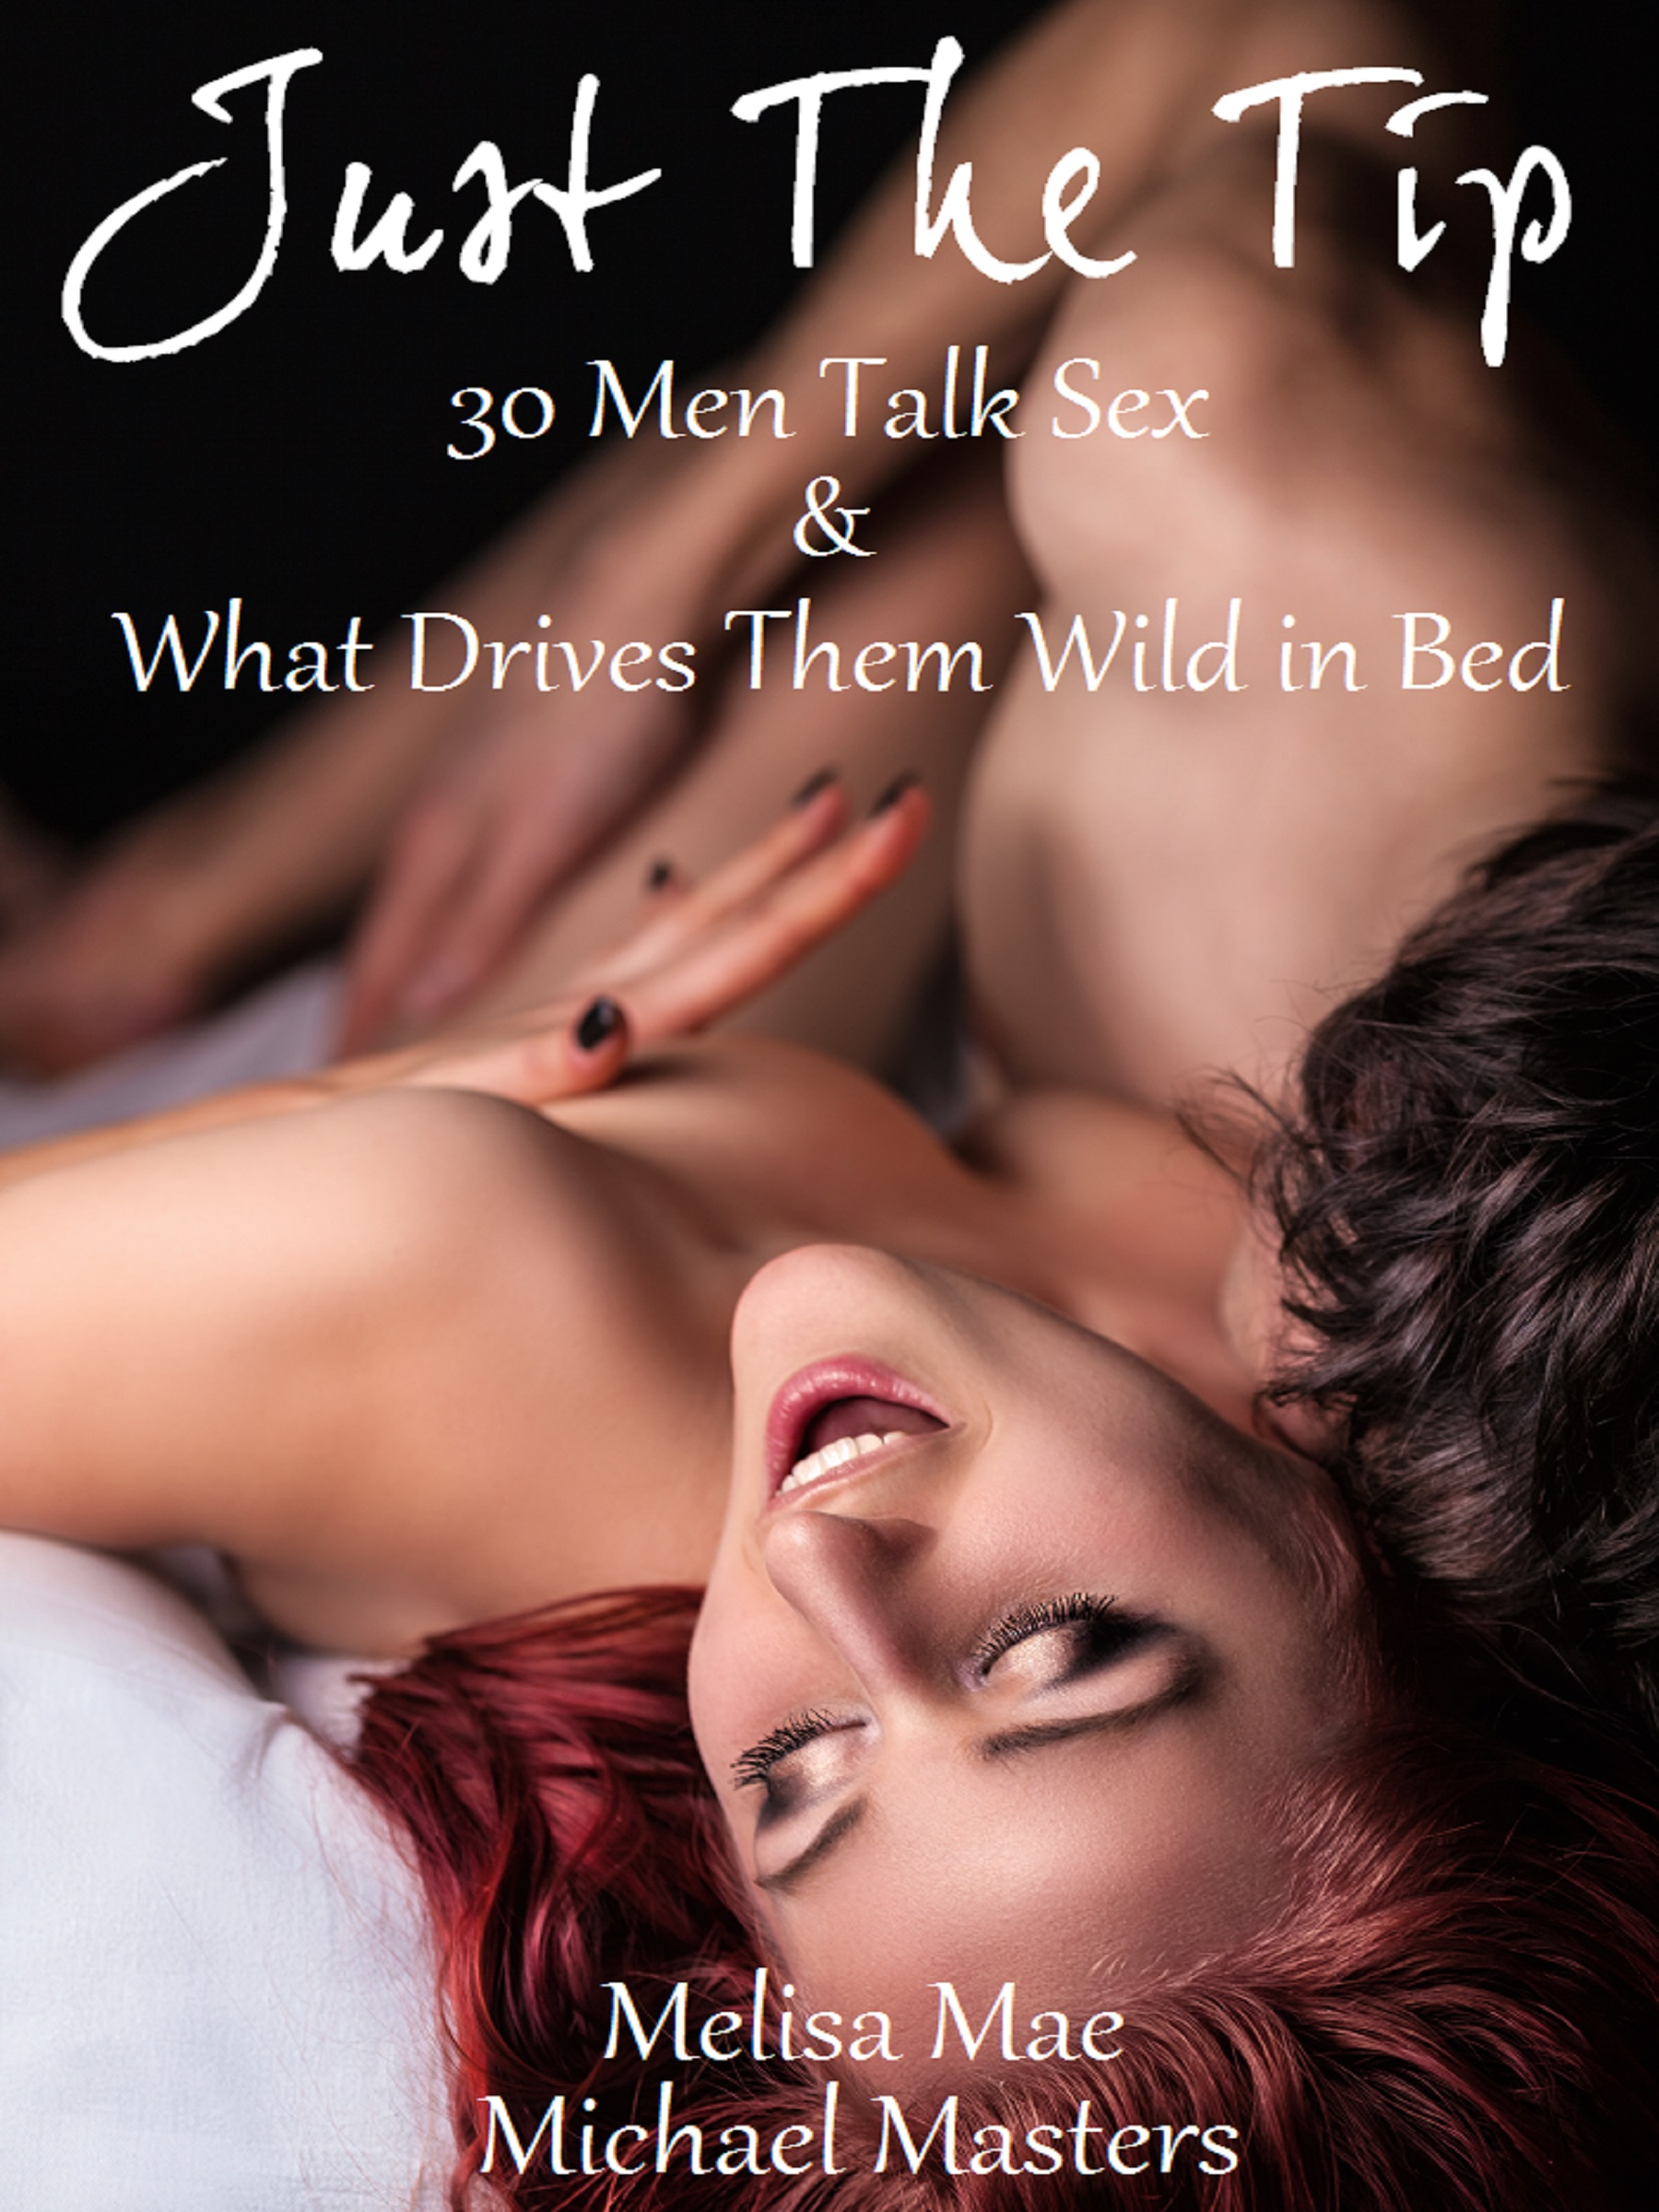 let talk about sex full movie